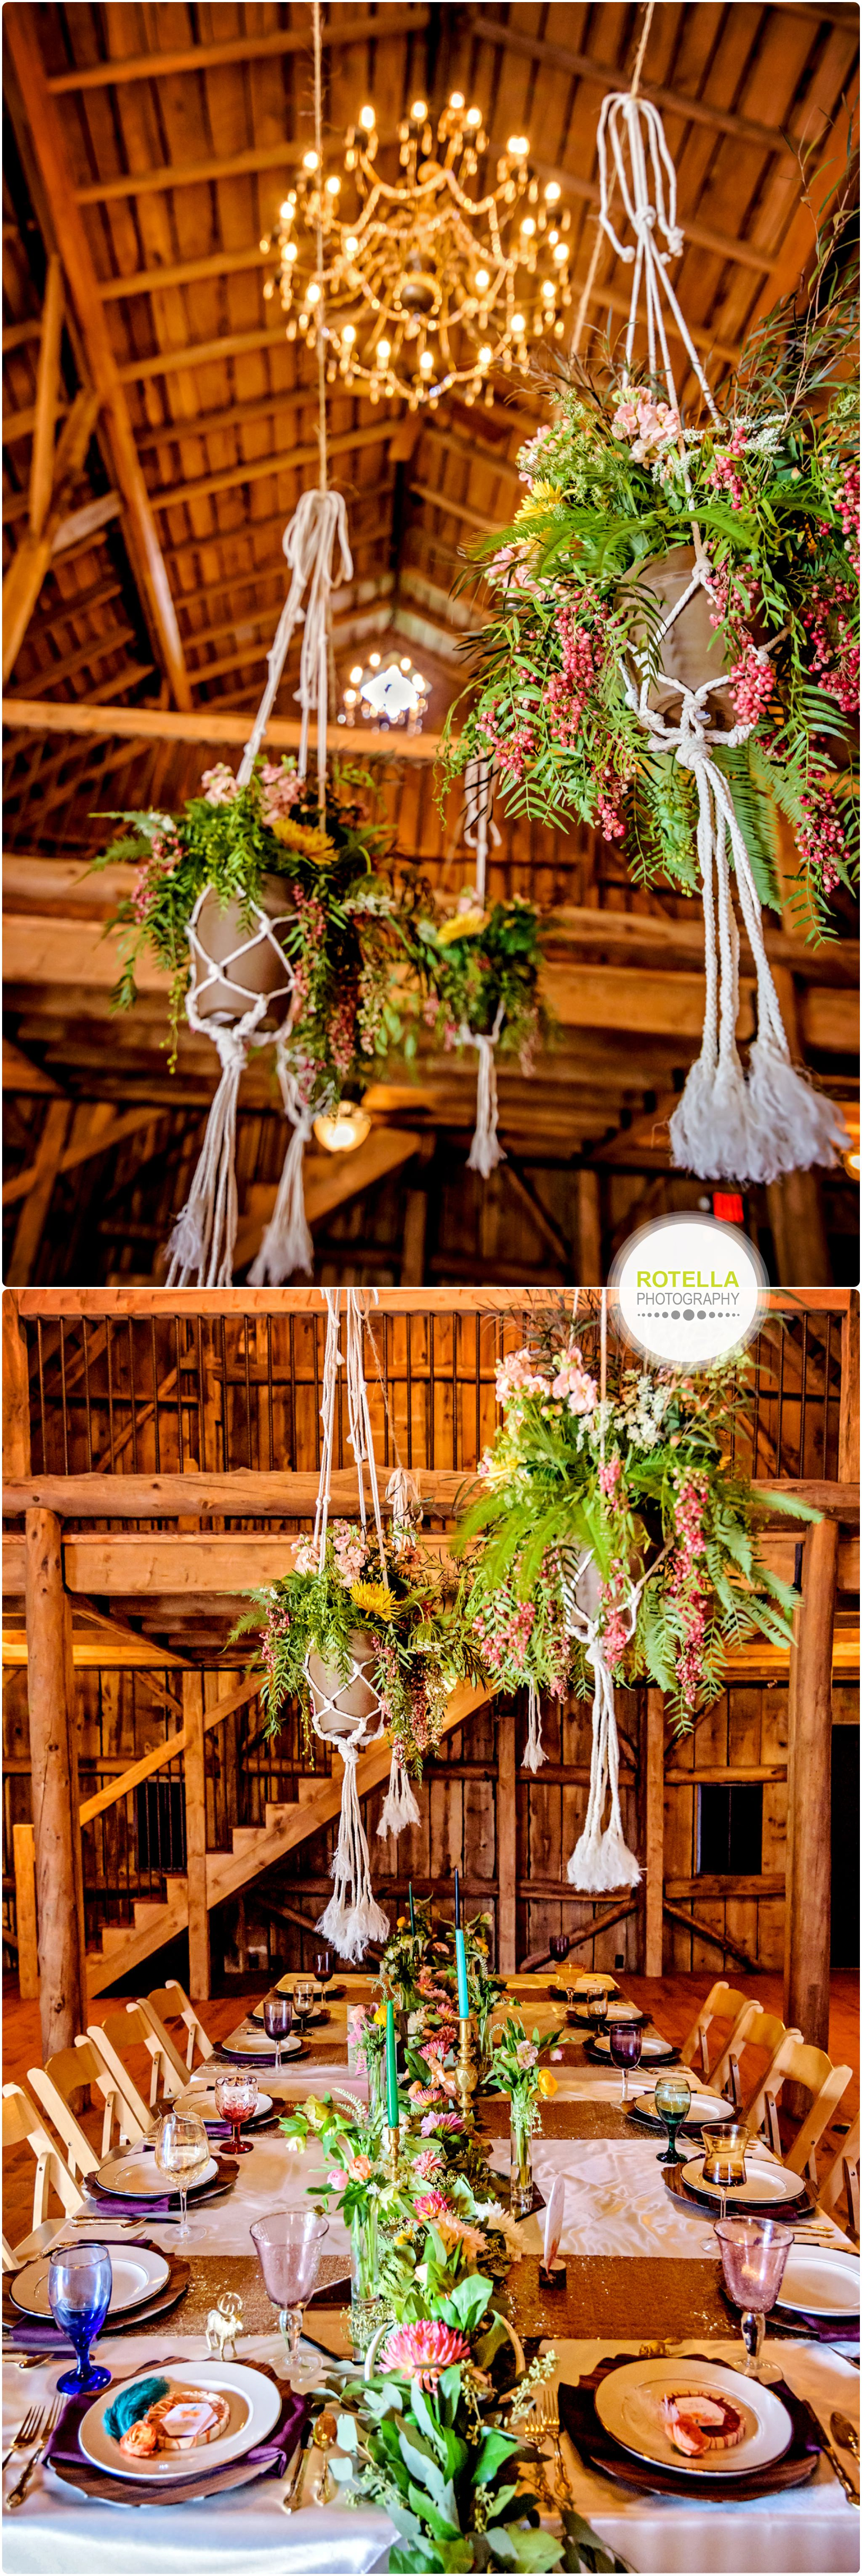 Ceremony inside barn at Rolling Ridge Wedding and Event Center